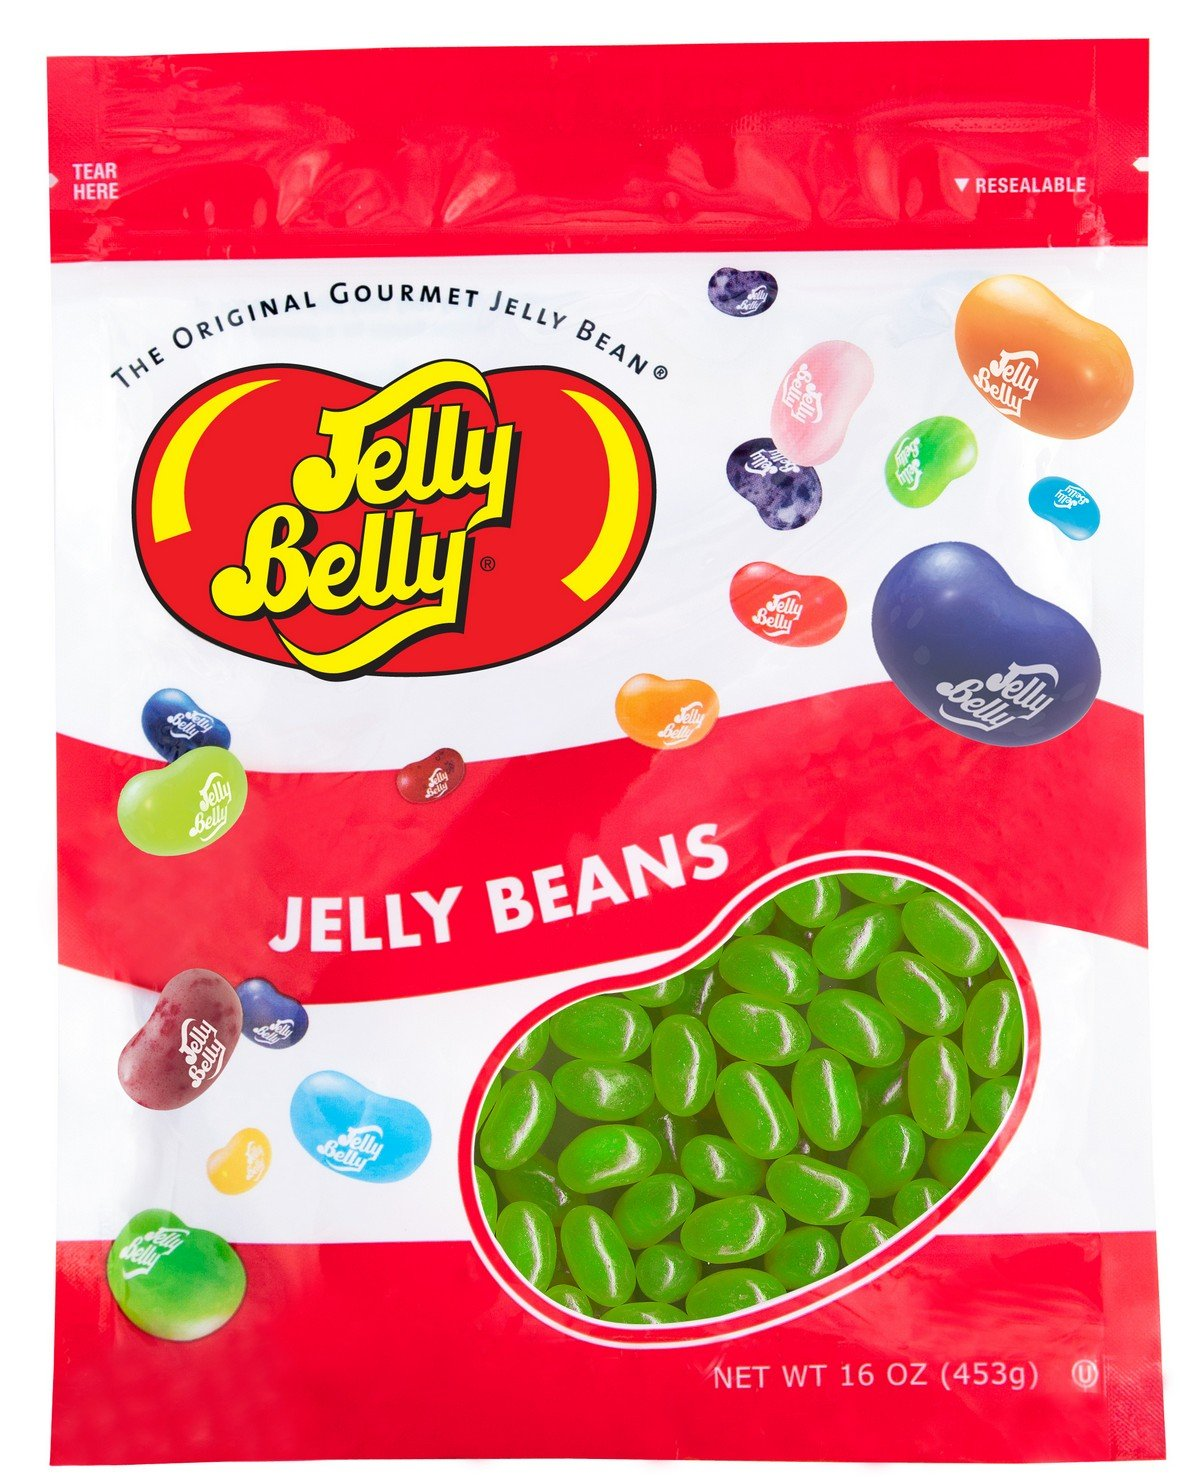 Jelly Belly Lemon Lime Jelly Beans - 1 Pound (16 Ounces) Resealable Bag - Genuine, Official, Straight from the Source